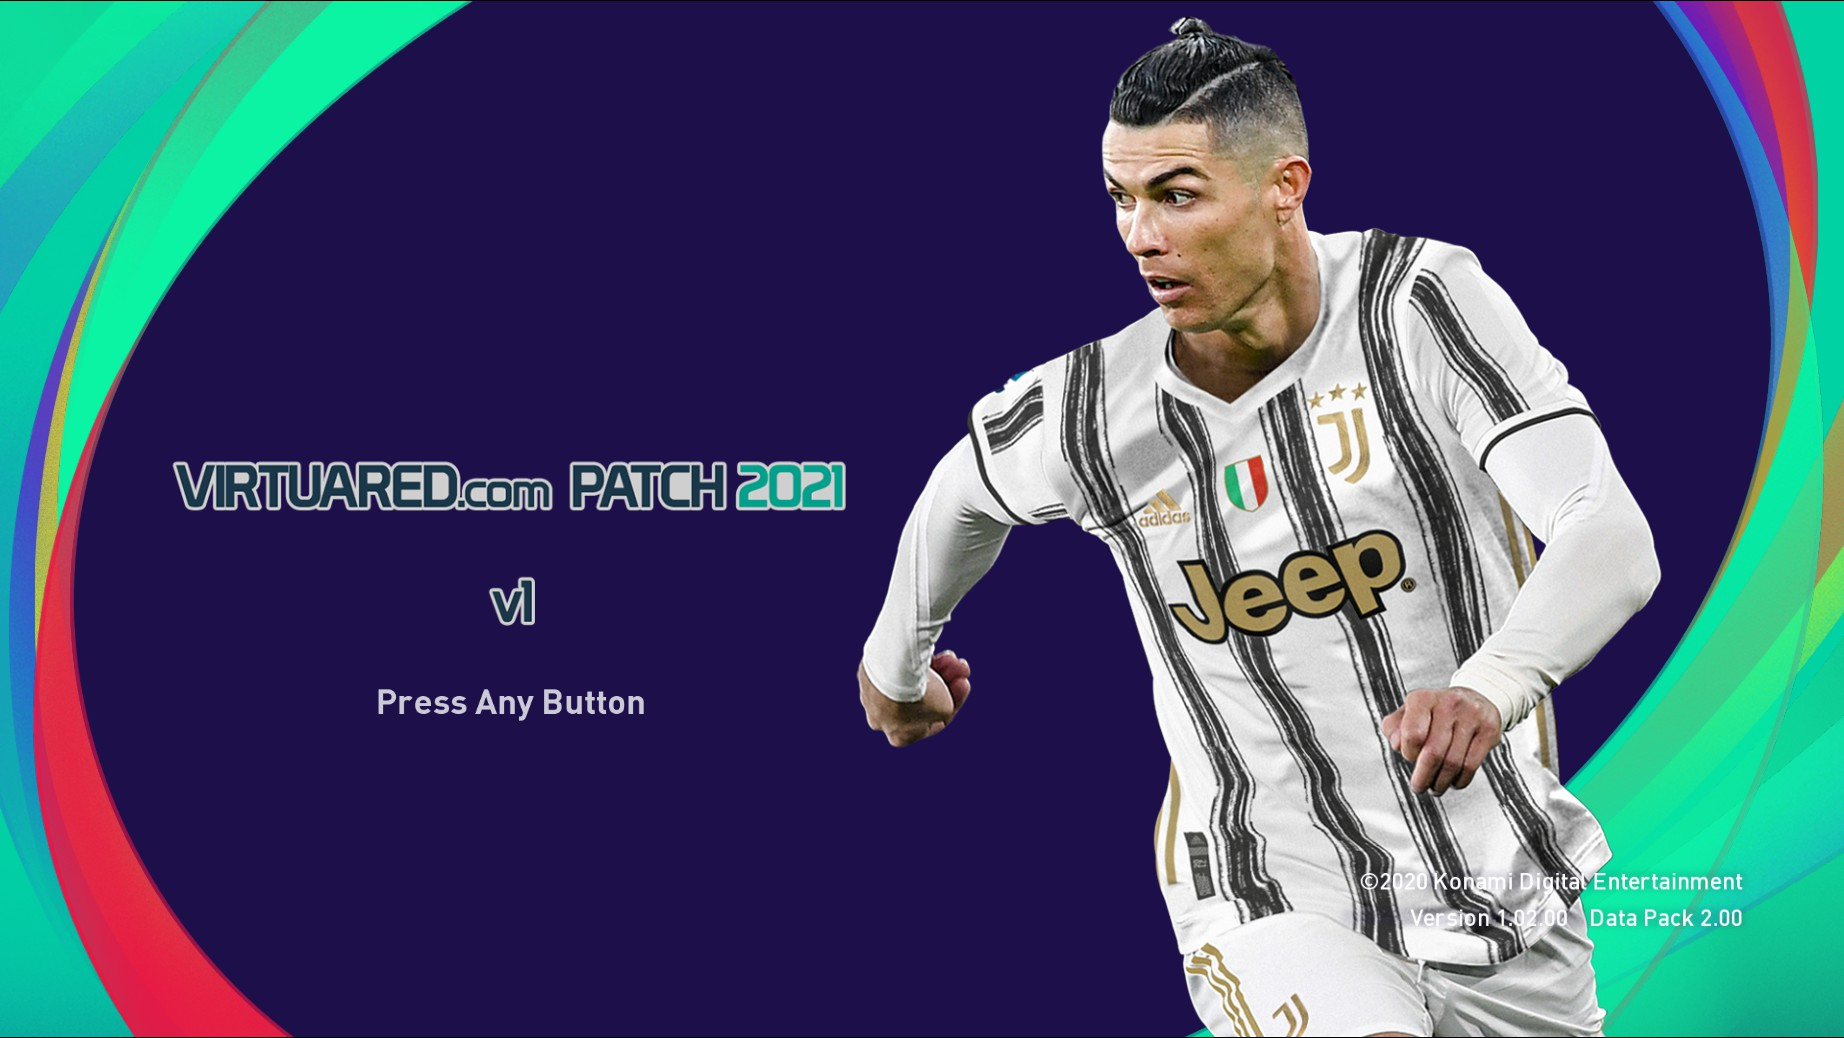 VirtuaRED.com Patch 2021 v1 ¡Ya disponible!